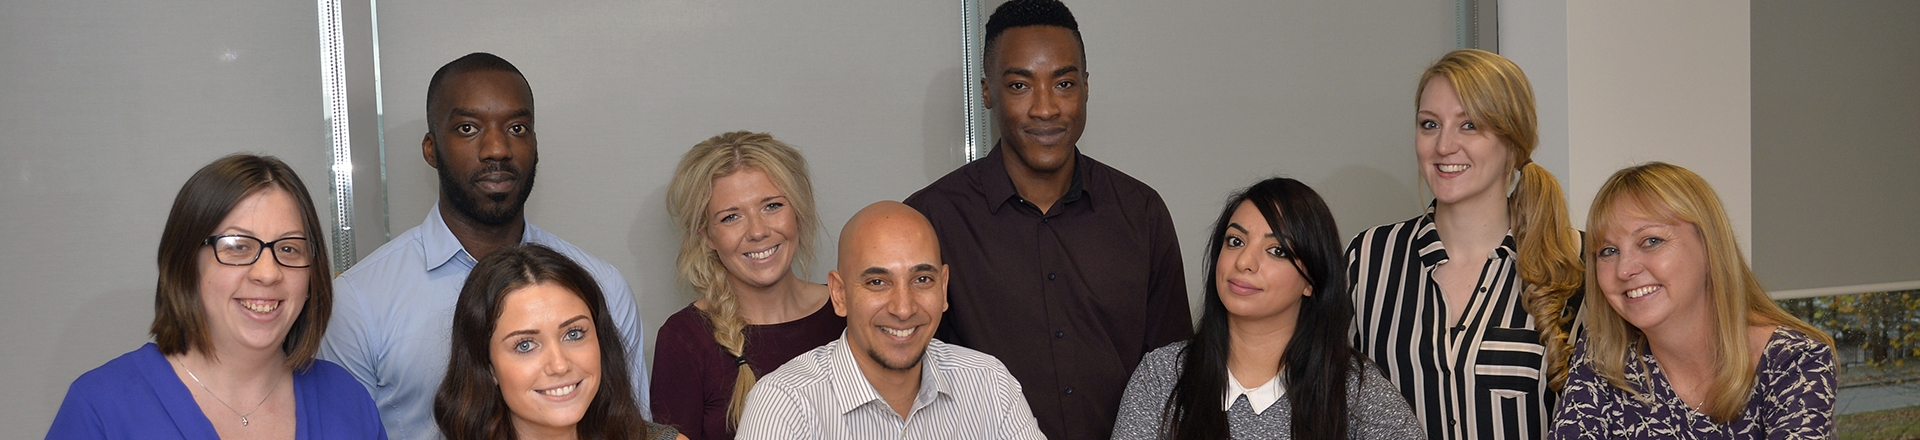 The voids and lettings team